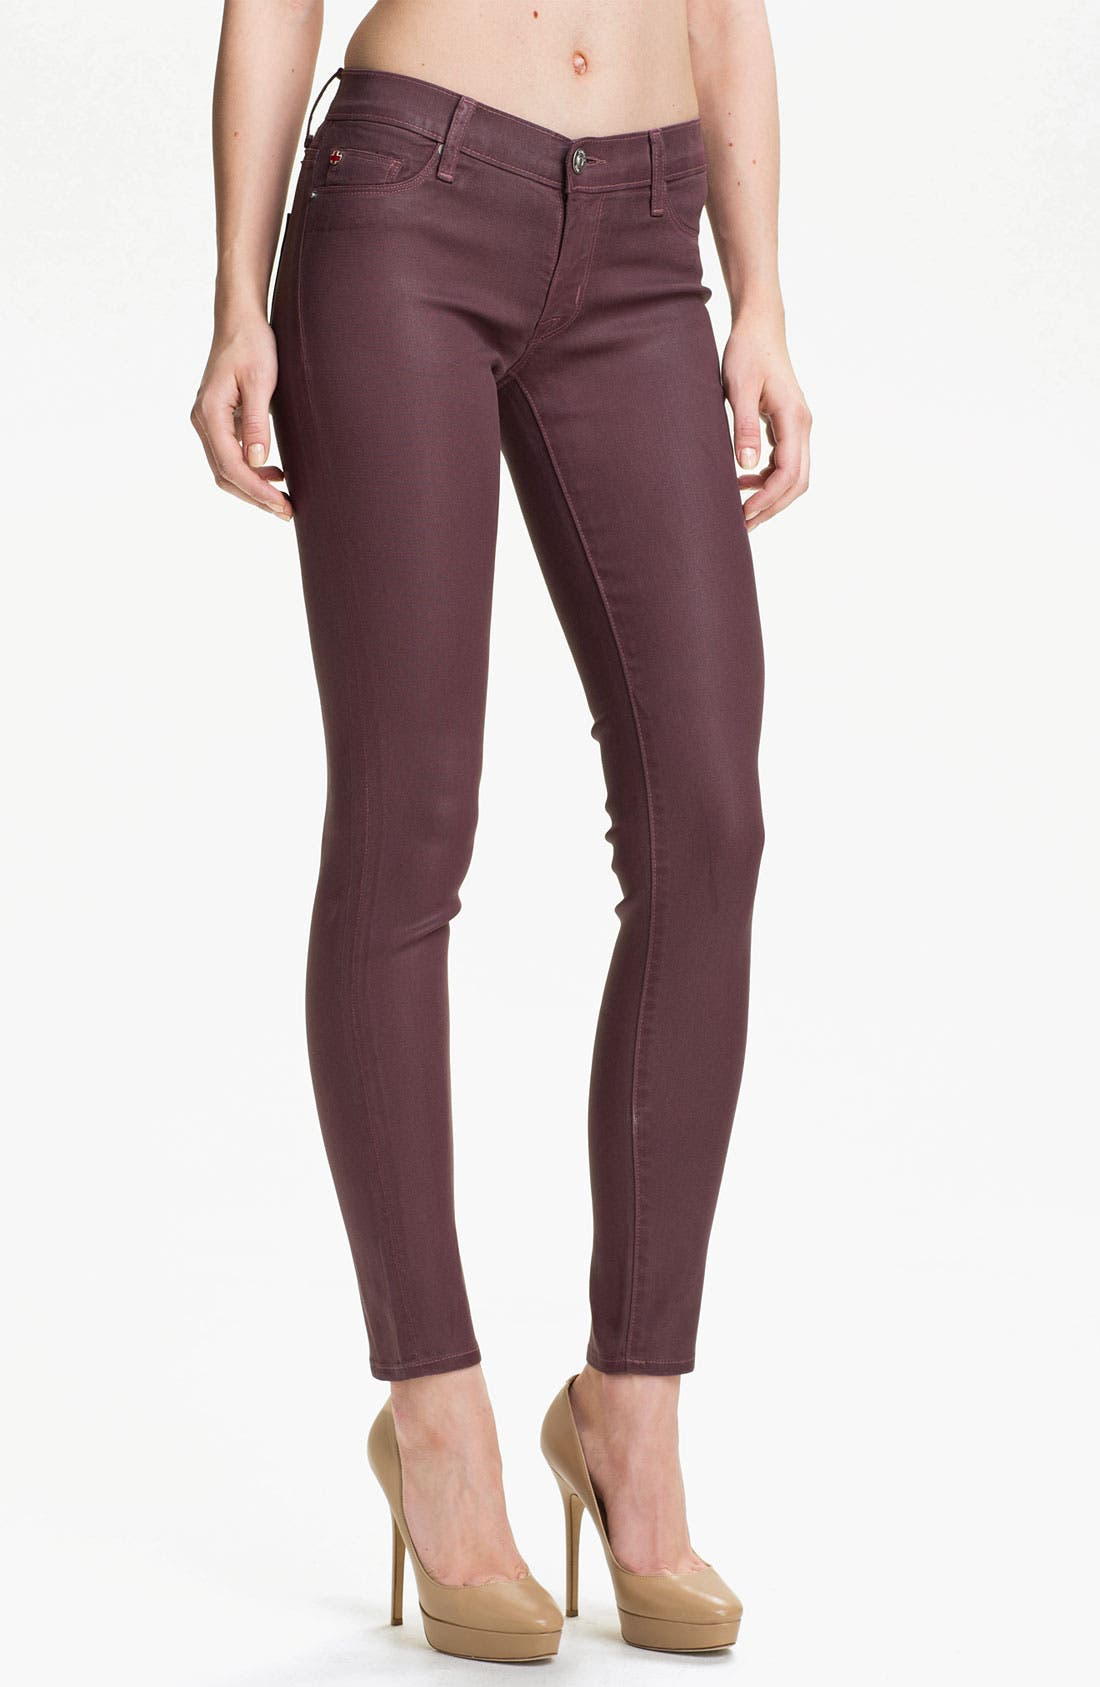 Main Image - Hudson Jeans 'Krista' Super Skinny Jeans (Steady As She Goes Wax)